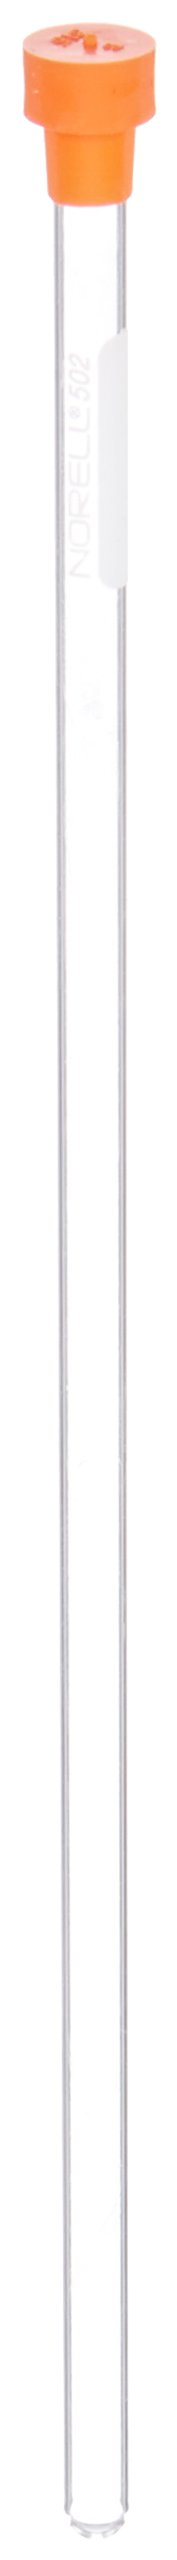 Chemglass Norell C-502-7 Type 1 Class B Glass Standard Series NMR Tube with Cap, 100 MHz, 7'' Long (Pack of 50)